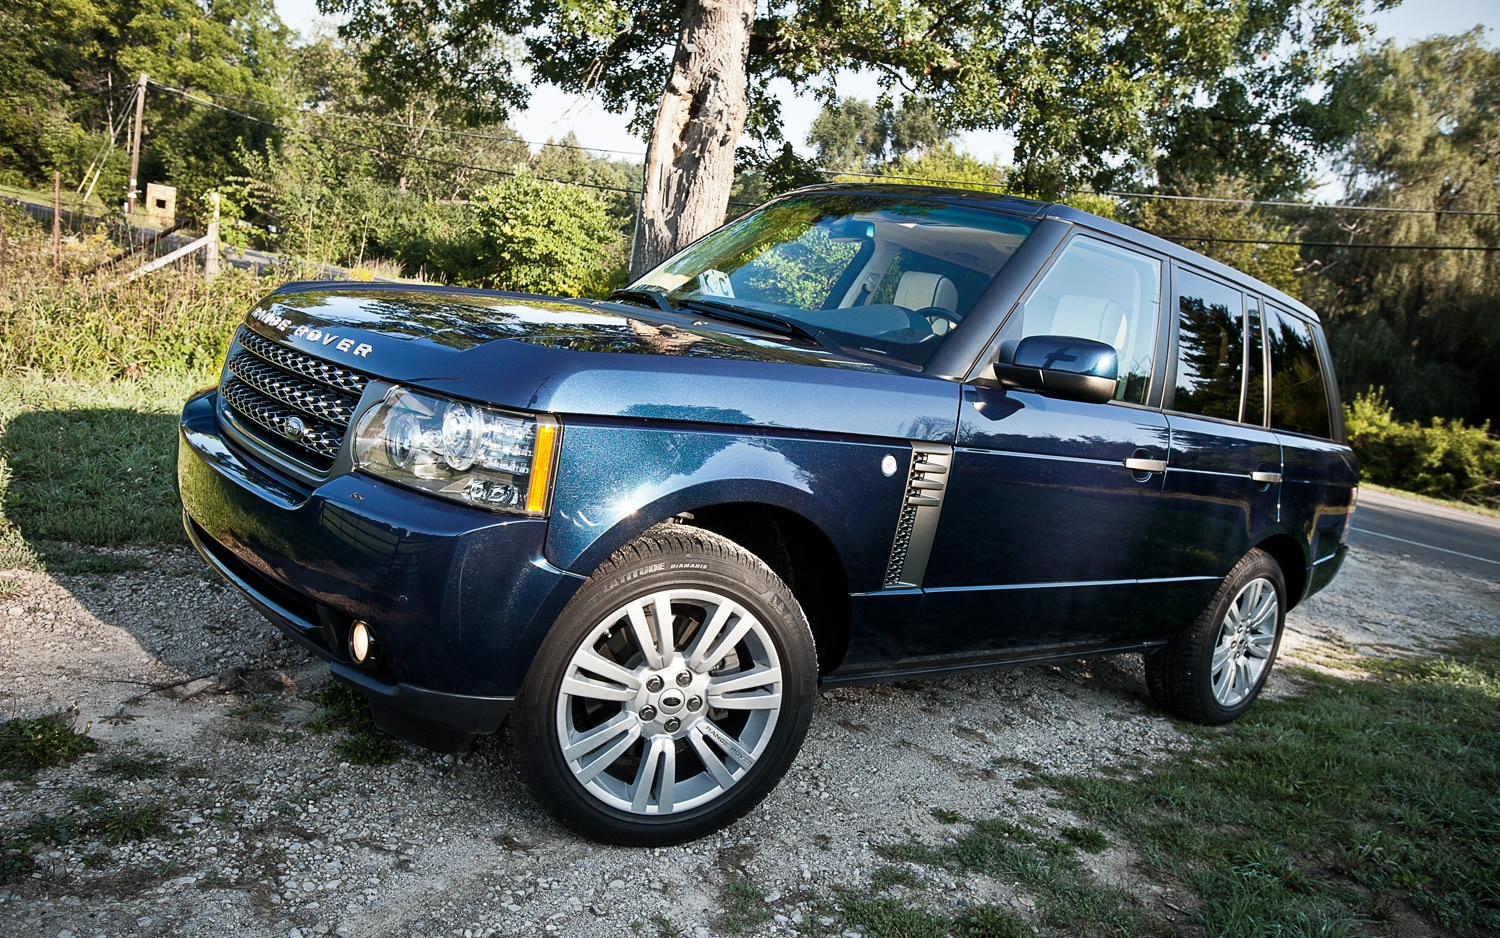 2011 Land Rover Range Rover HSE - Editors' Notebook